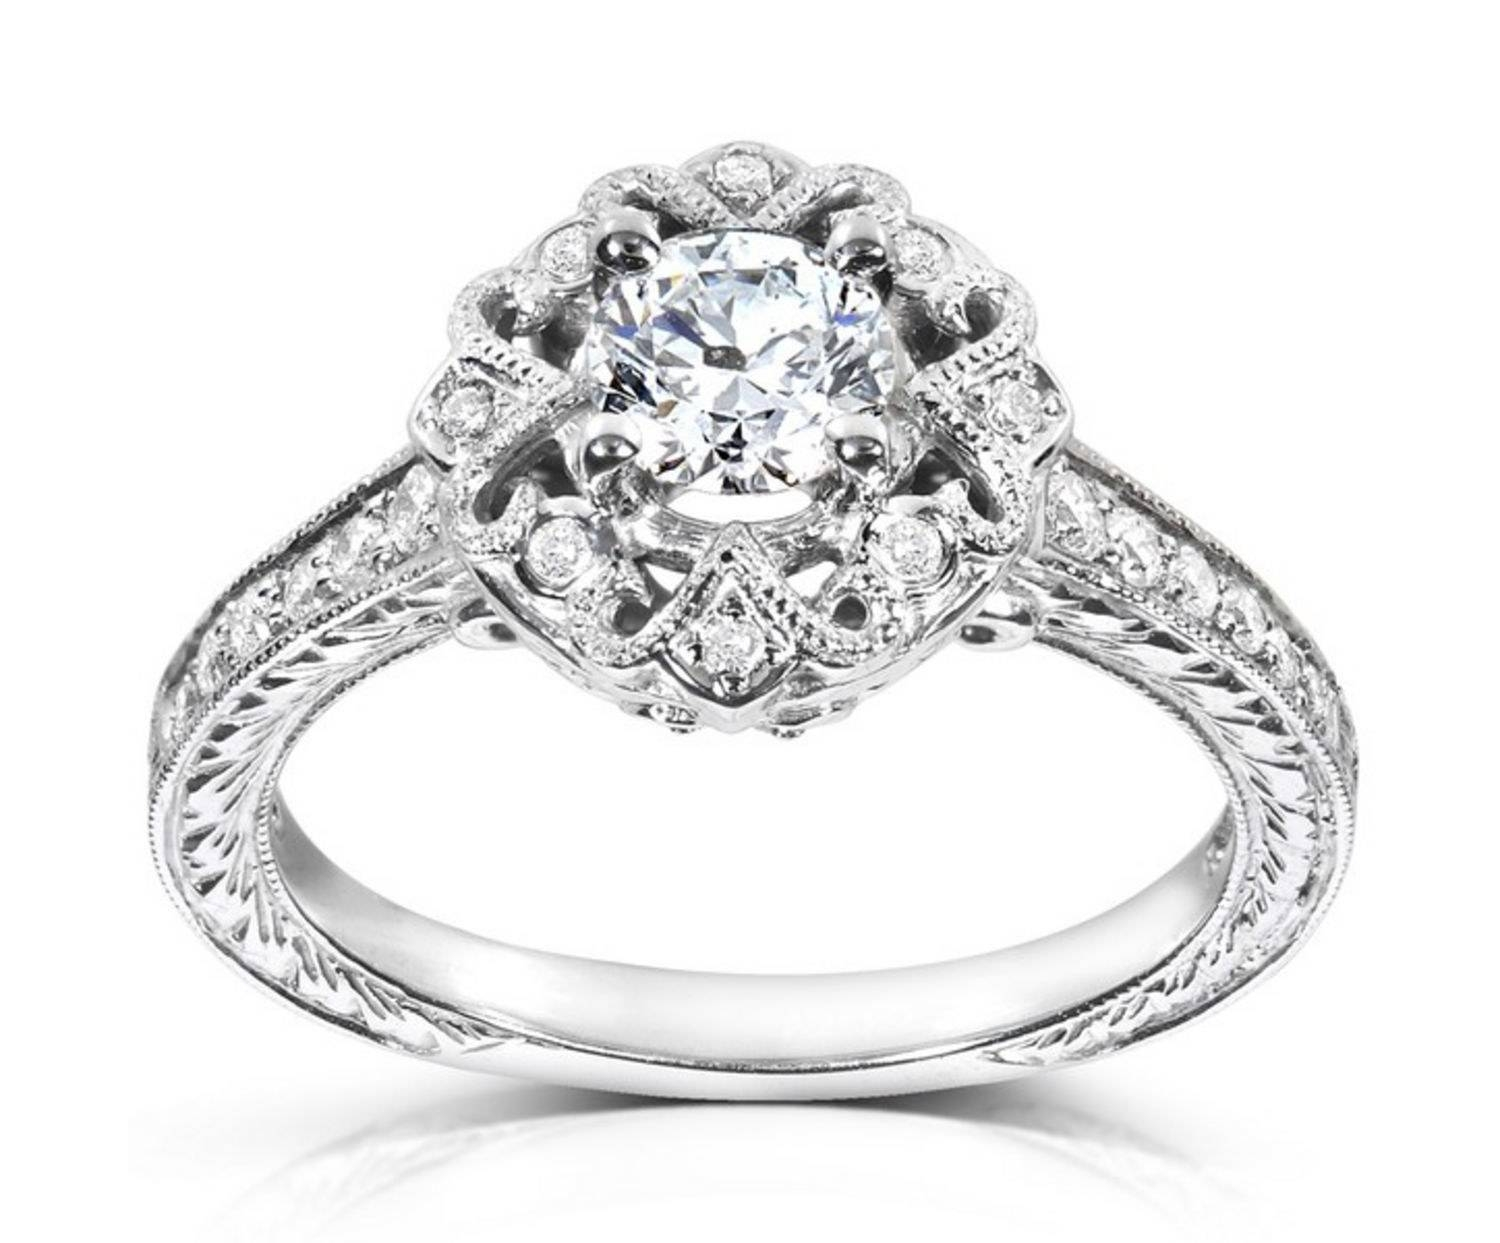 Engagement Rings : Wedding Engagement Rings Stunning Engagement Pertaining To Wedding Engagement Rings (View 8 of 15)